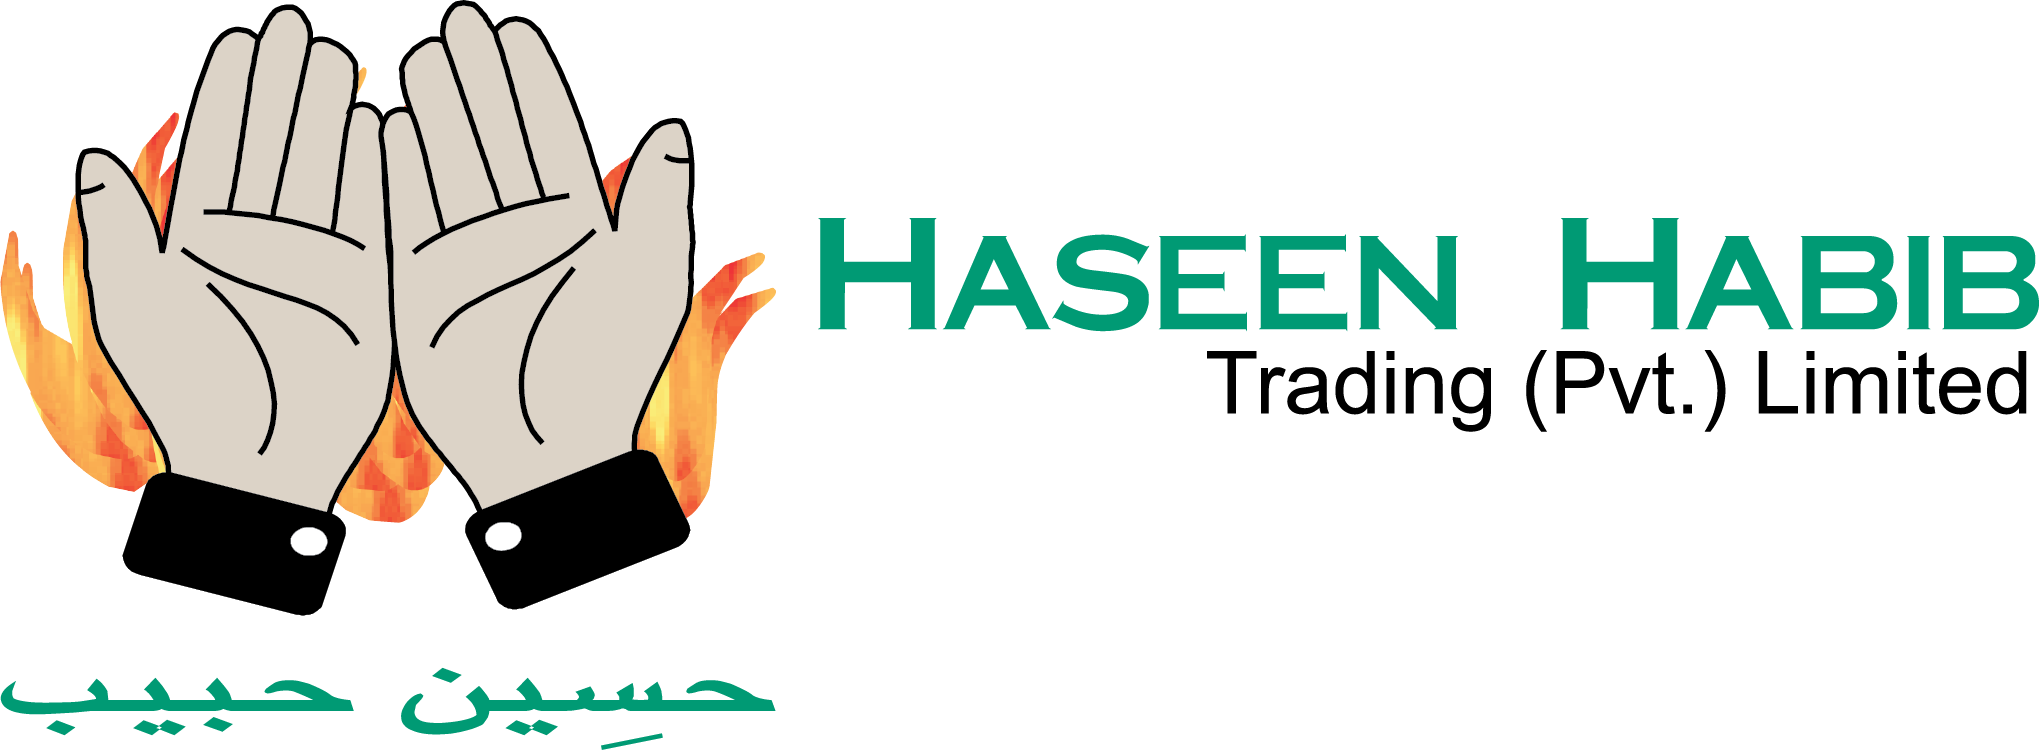 Haseen Habib Trading Pvt Ltd - Leading the way in Total Fire Protection &  Safety